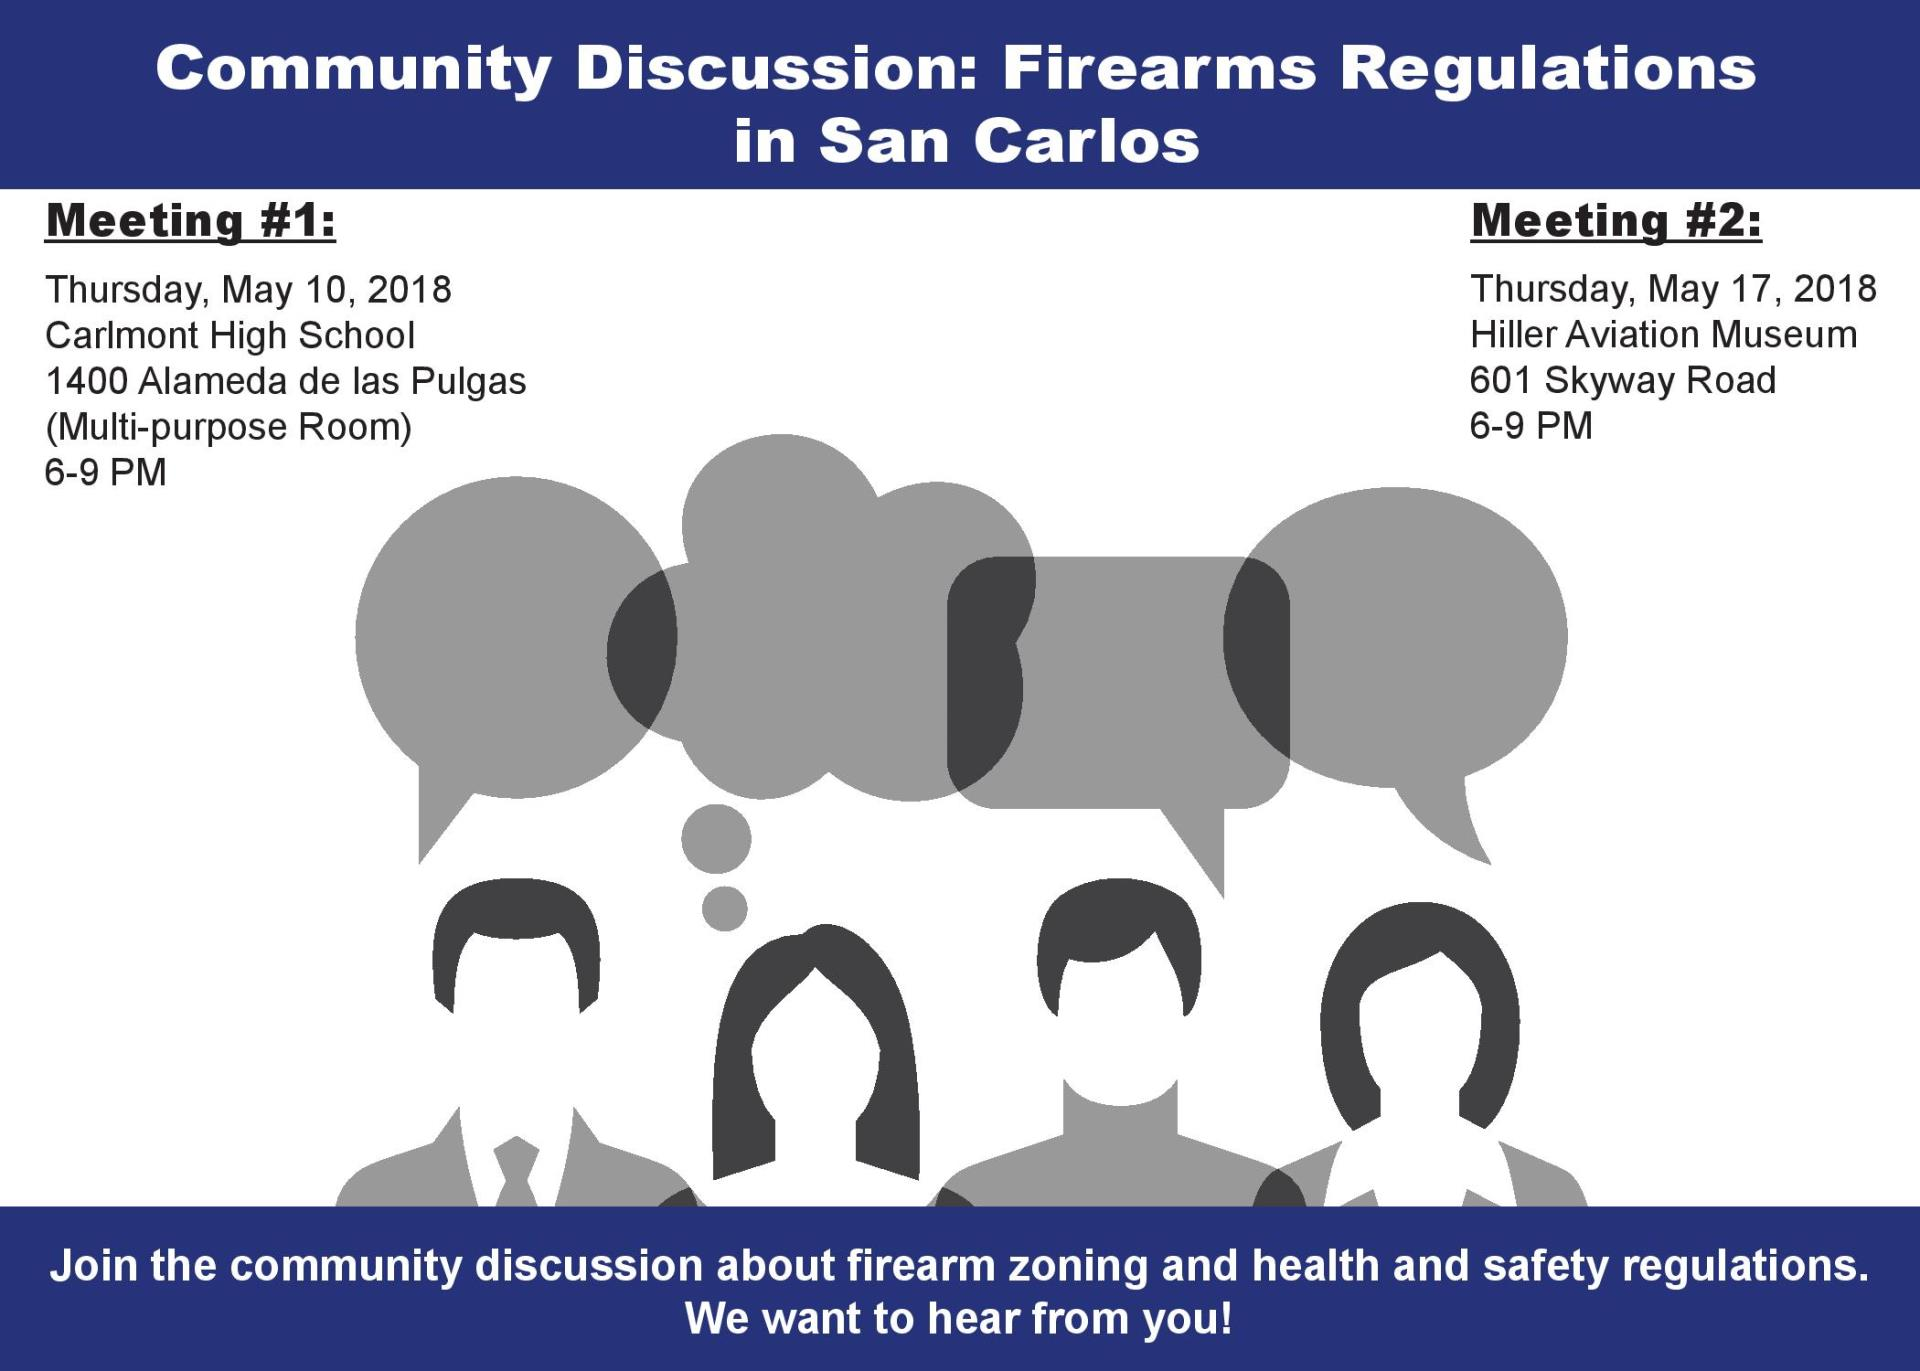 Firearm Meeting